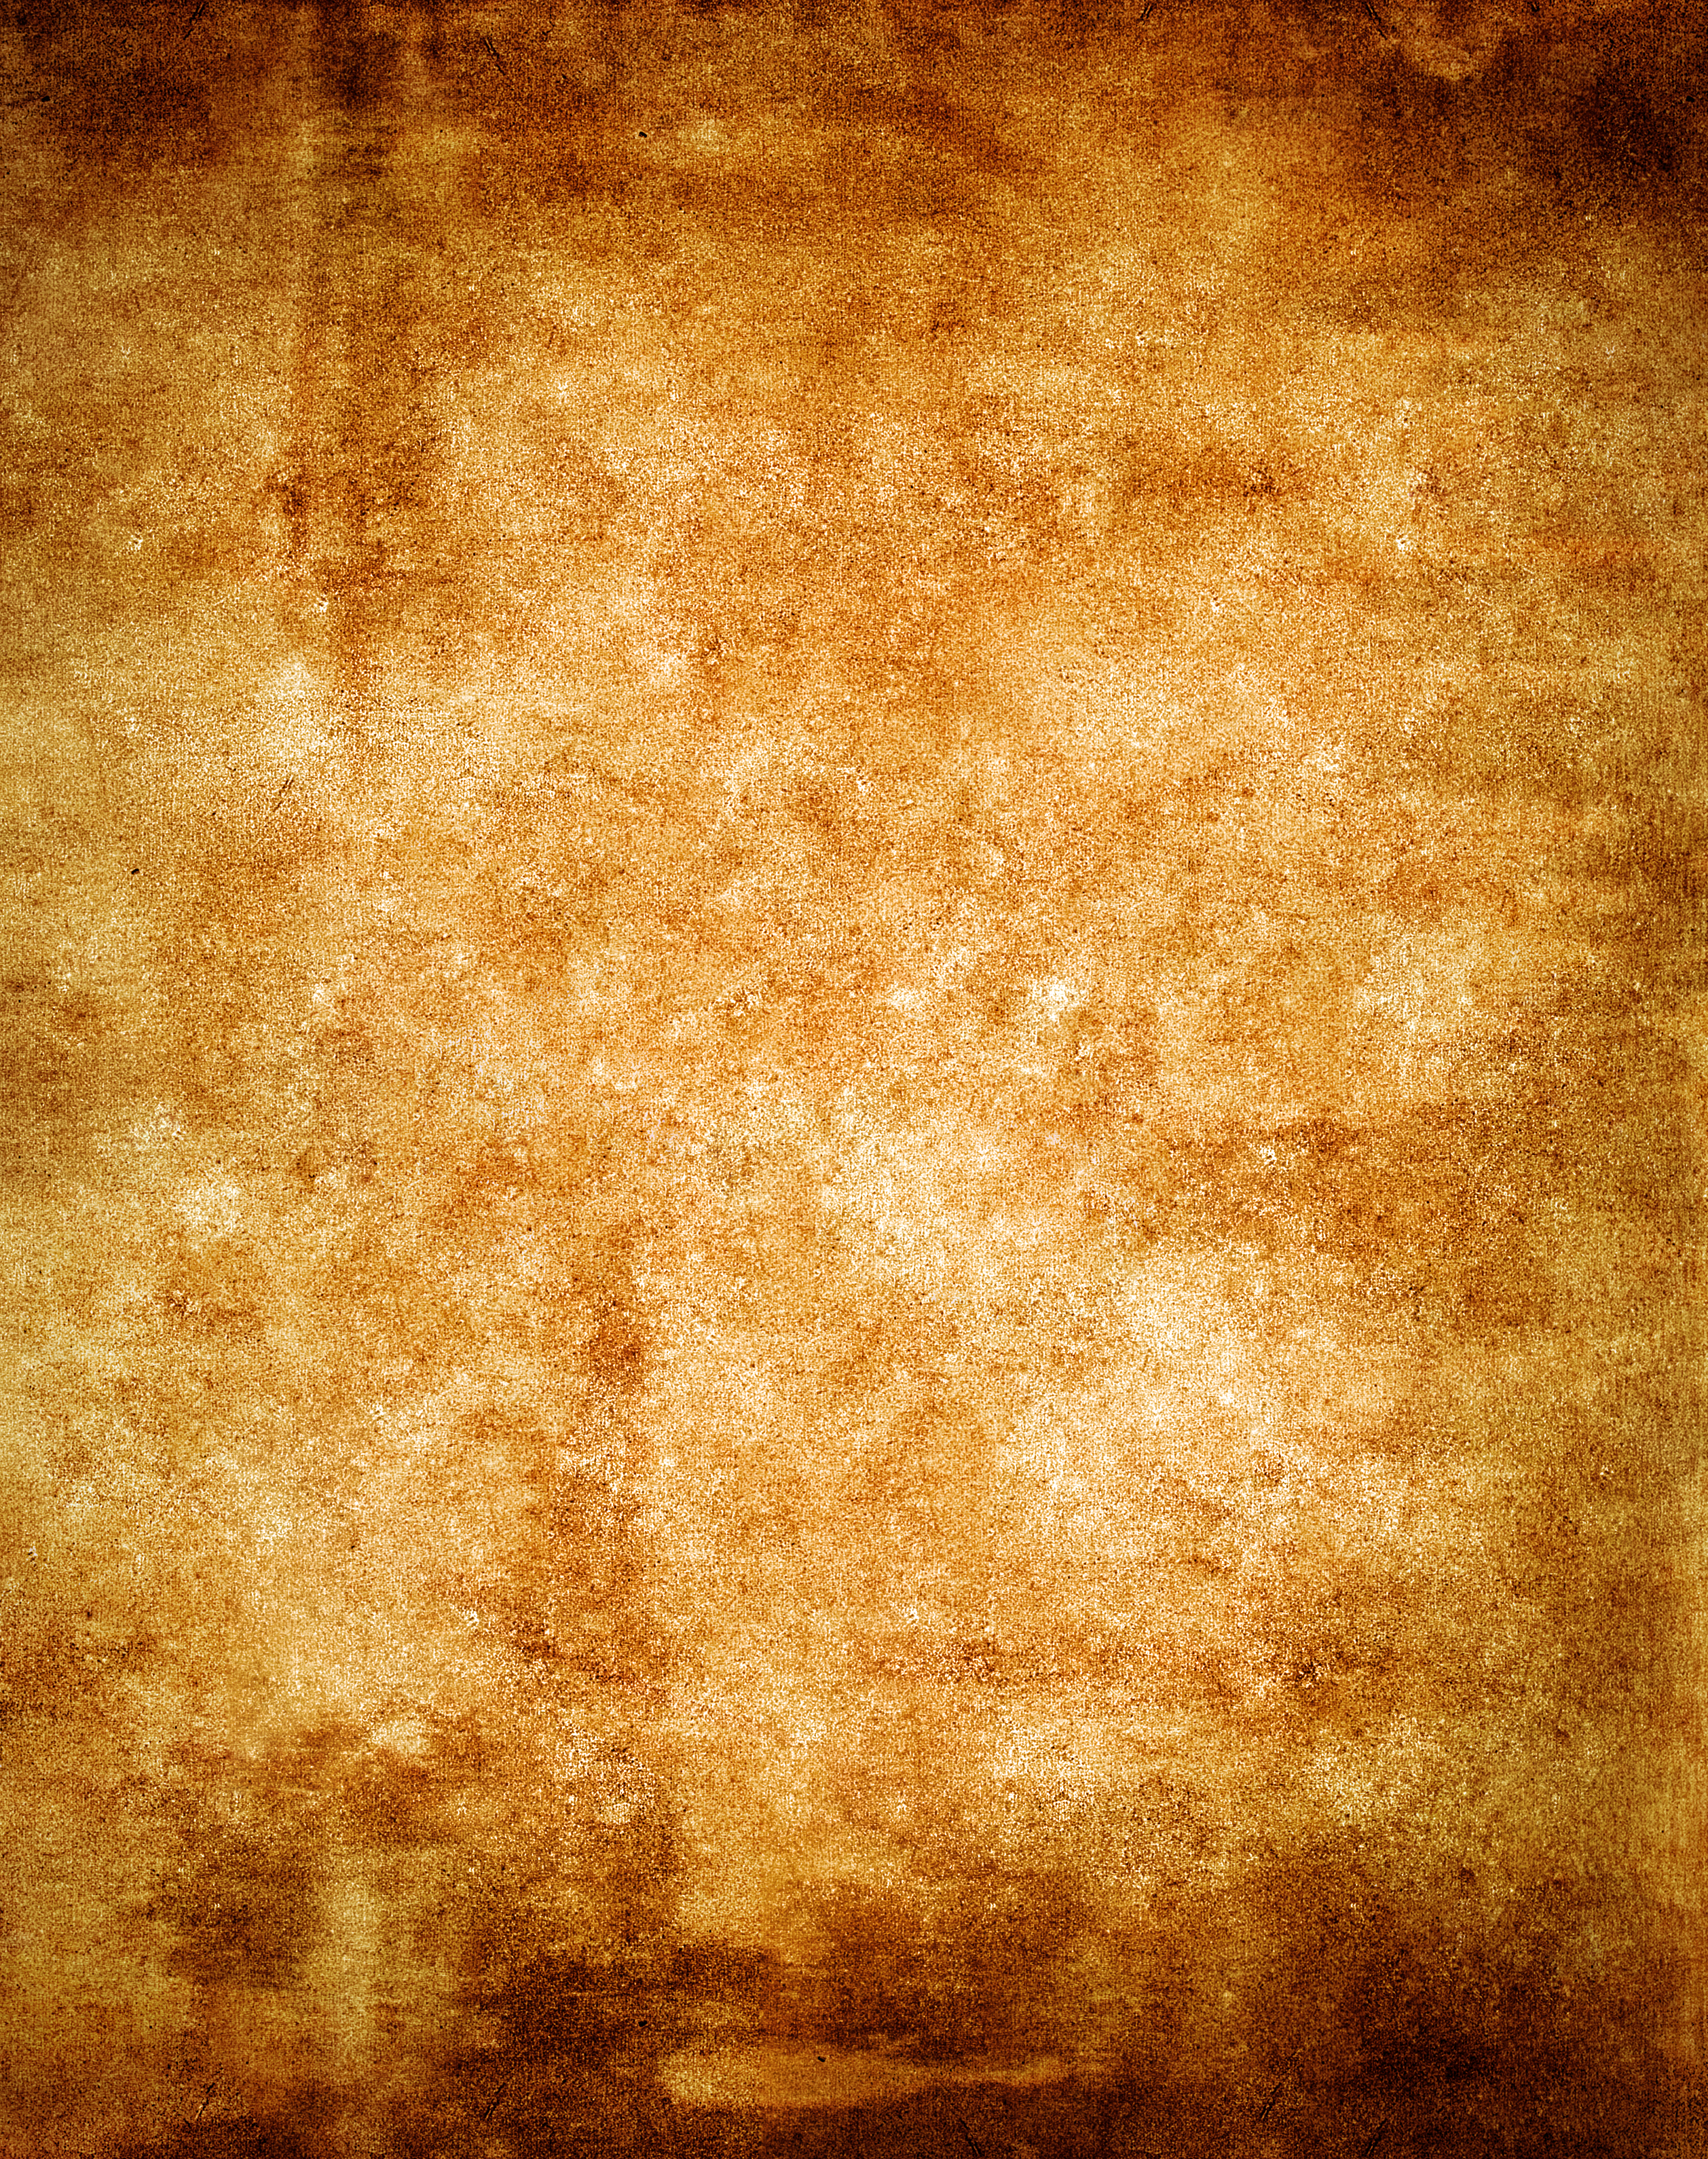 free photo  vintage background - grungy  worn  wallpaper - free download